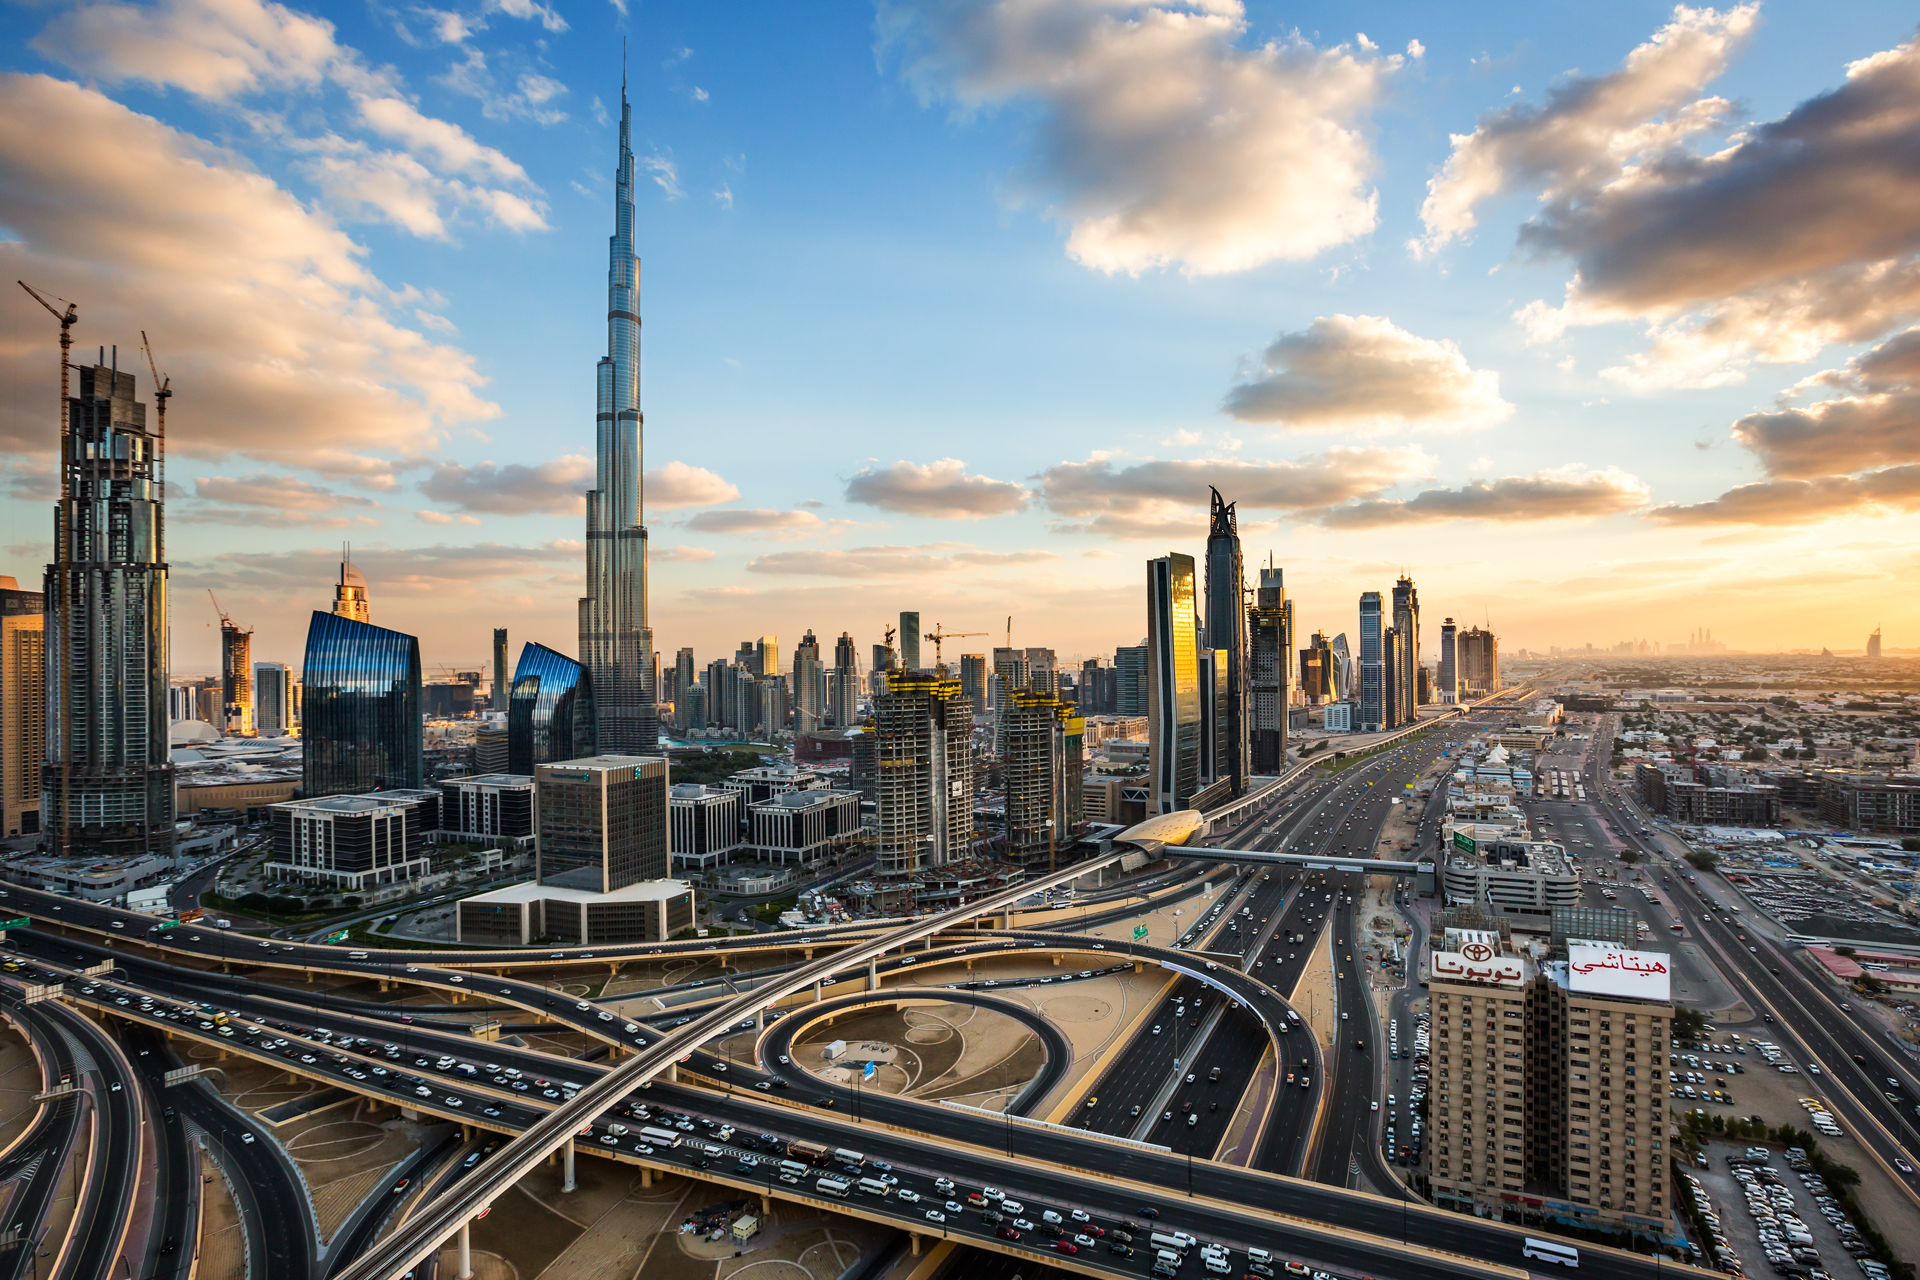 Just how spectacular are the new UAE Economic Substance Regulations for the UAE?